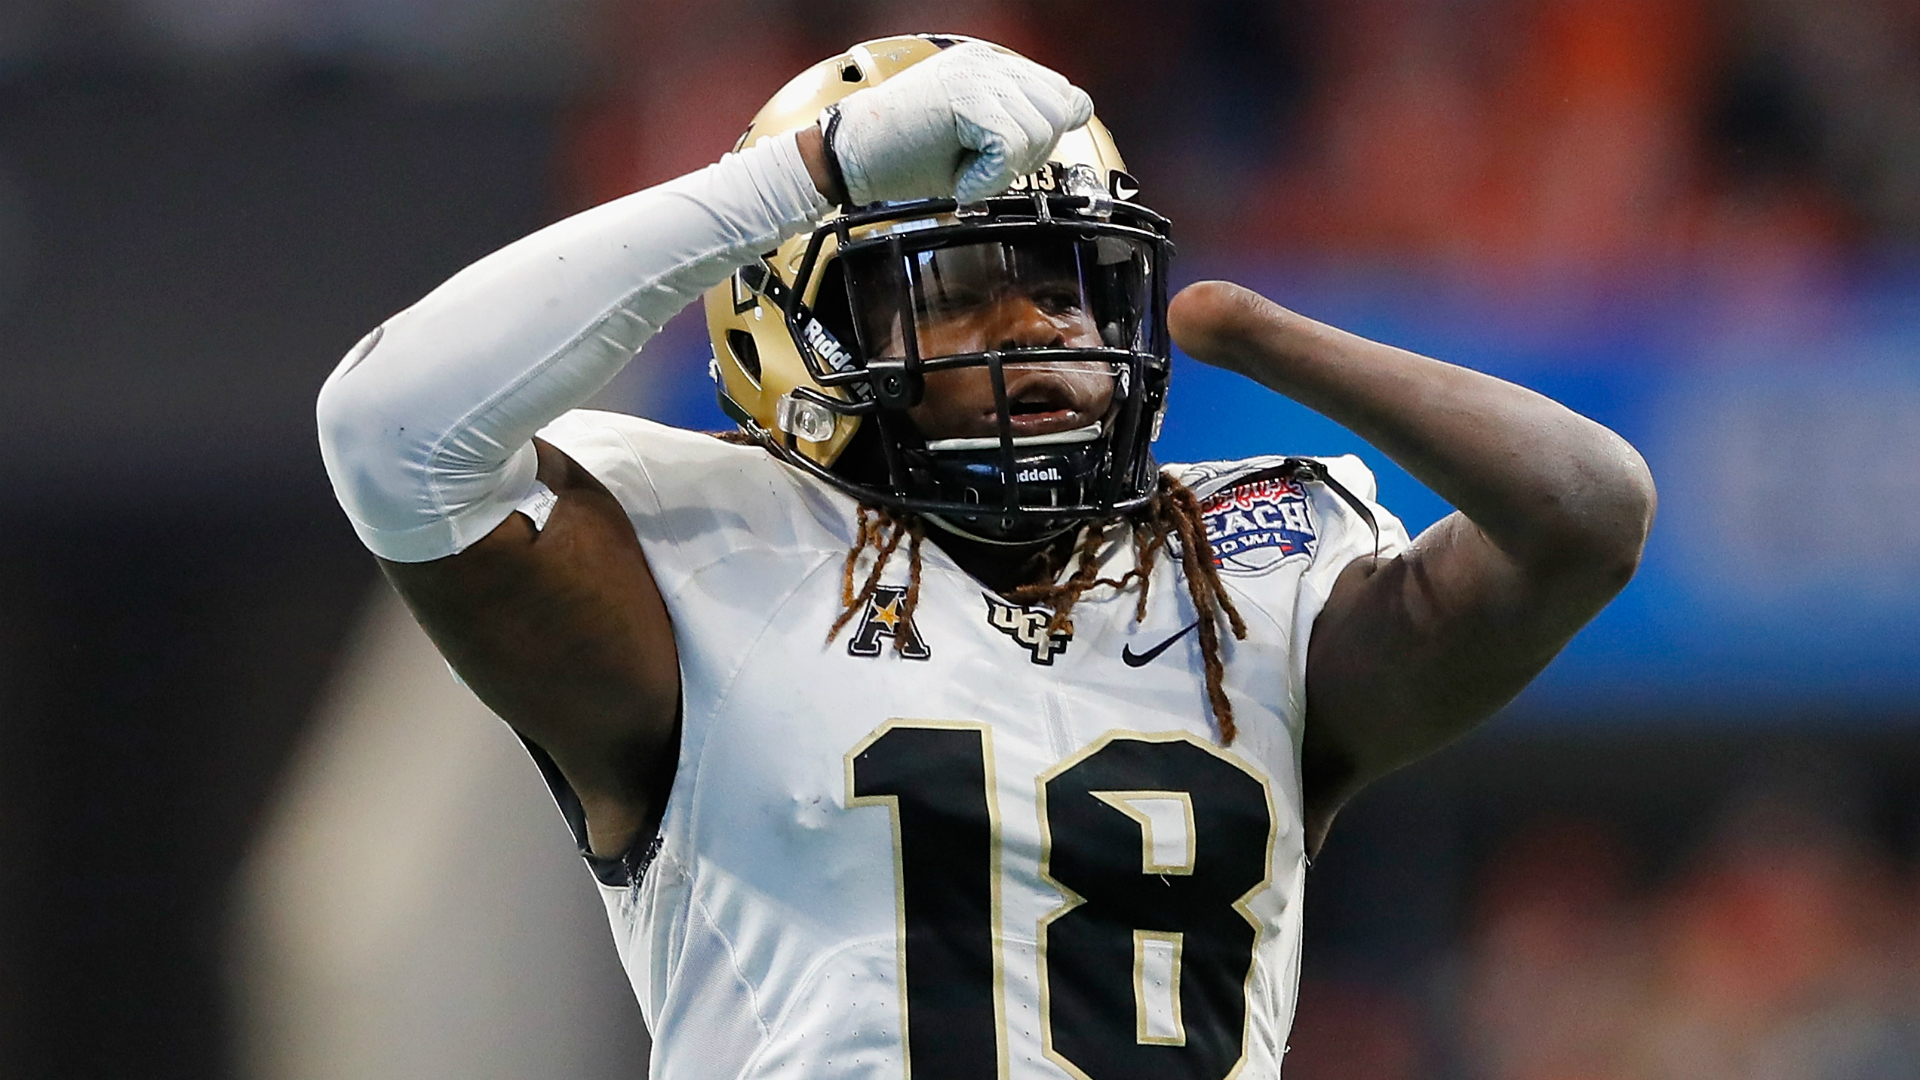 Shaquem Griffin and Josh Allen among winners at NFL Combine in Indianapolis